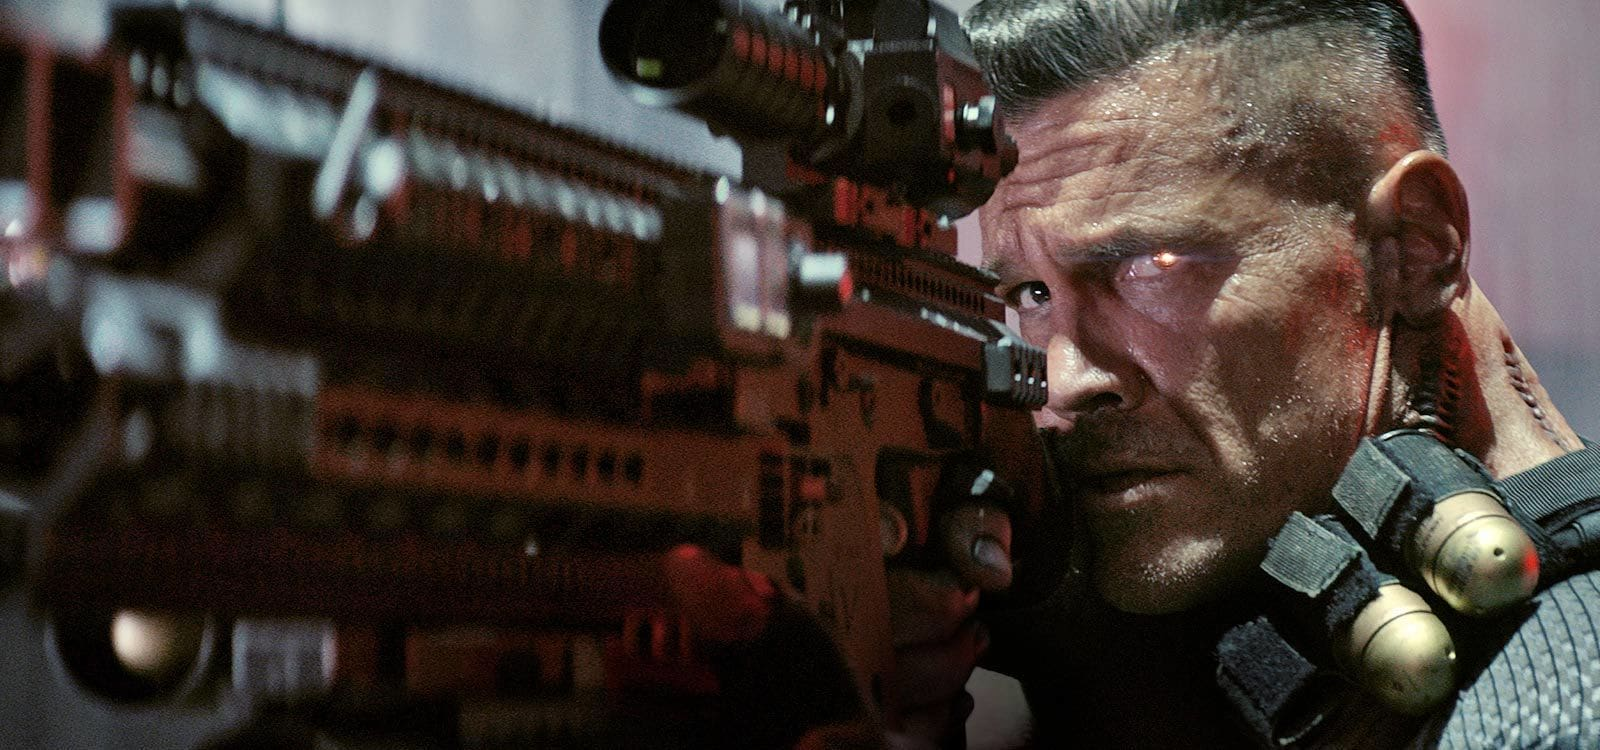 "Actor Josh Brolin (as Cable) aiming a gun in the film ""Deadpool 2"""